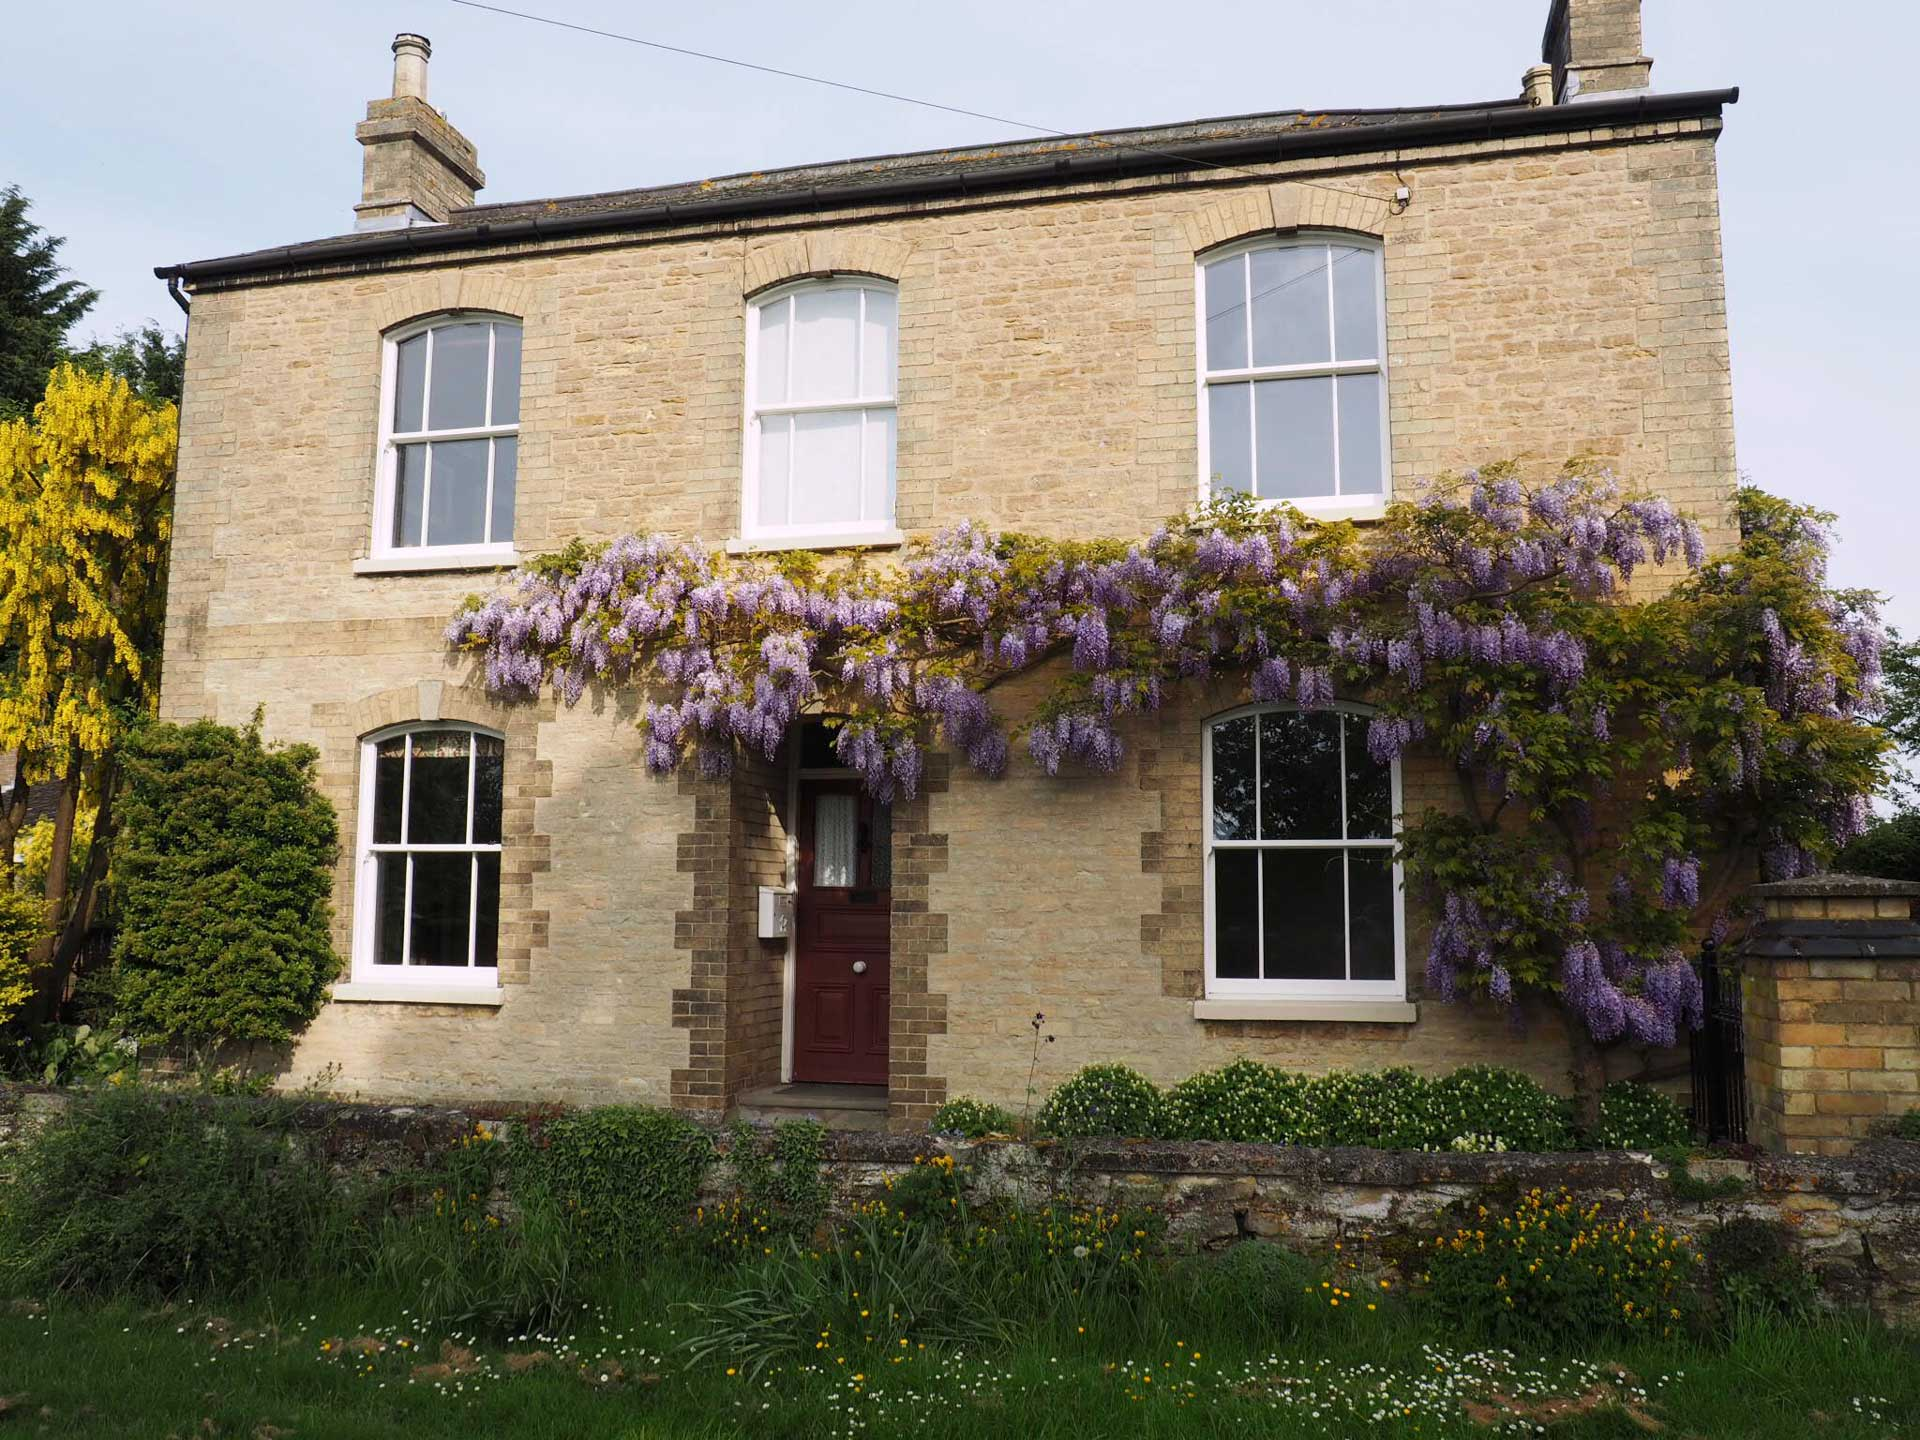 House with Sliding Sash Windows